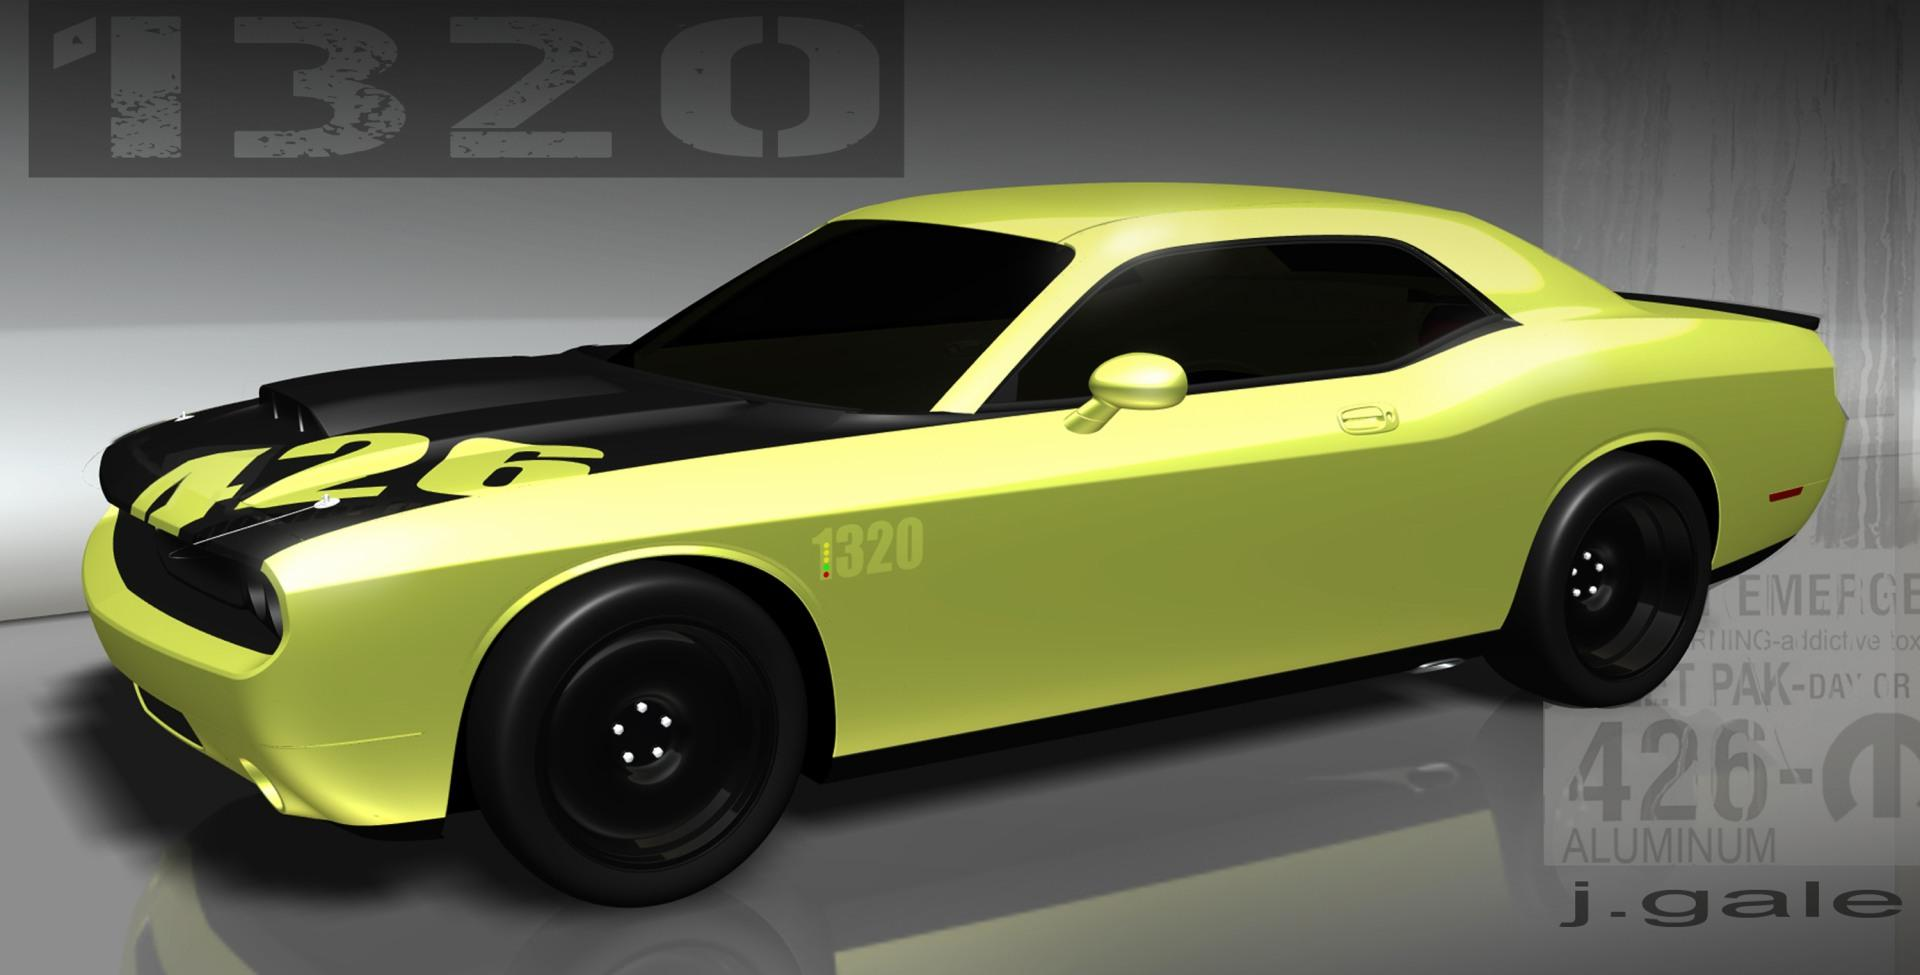 2010 Dodge Challenger 1320 News And Information